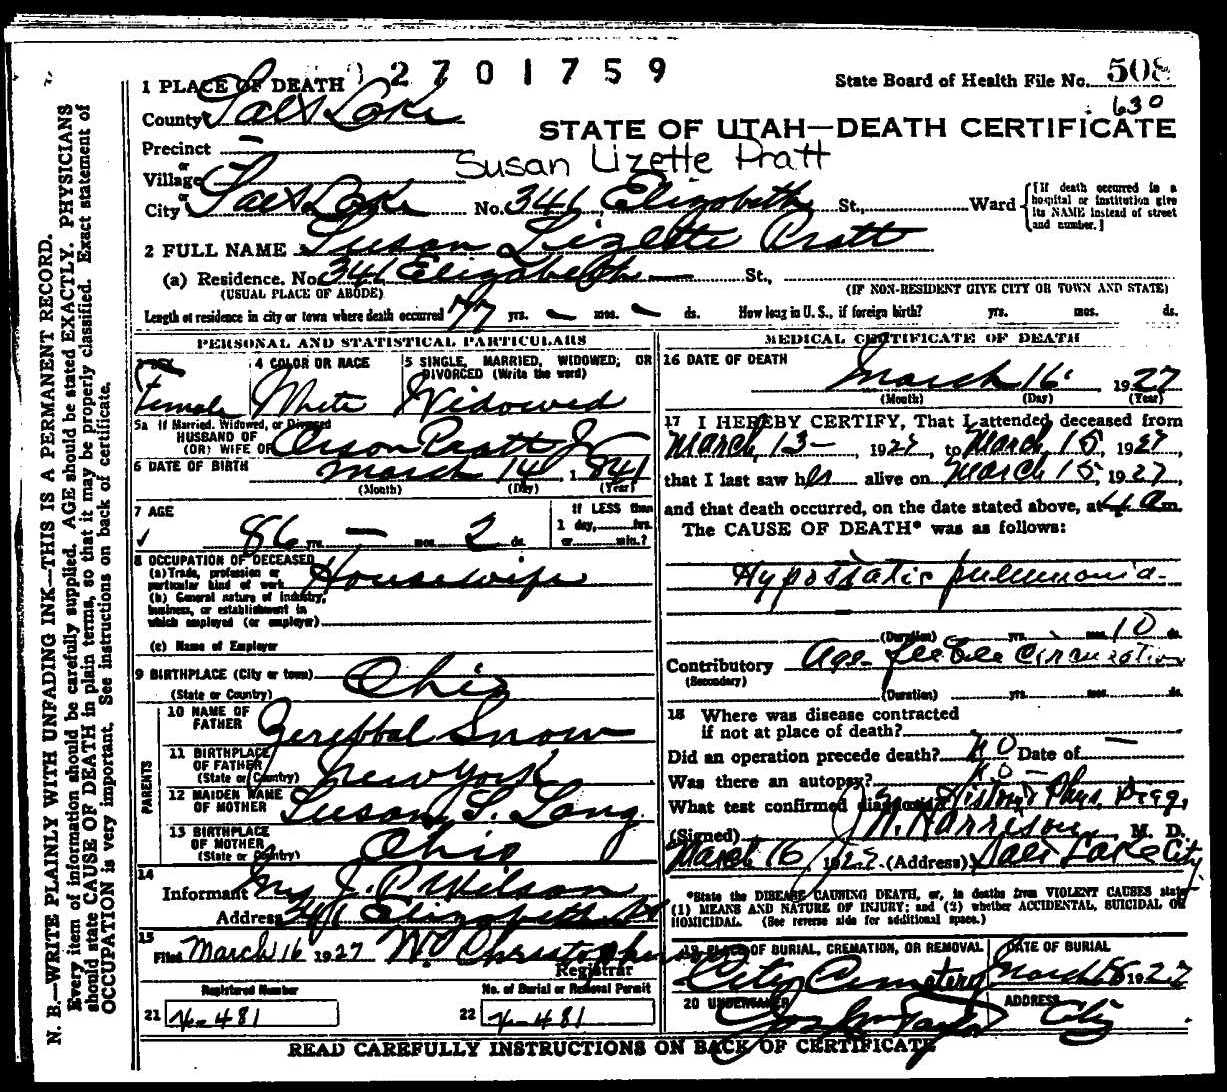 death certificate of susan lizette snow pratt